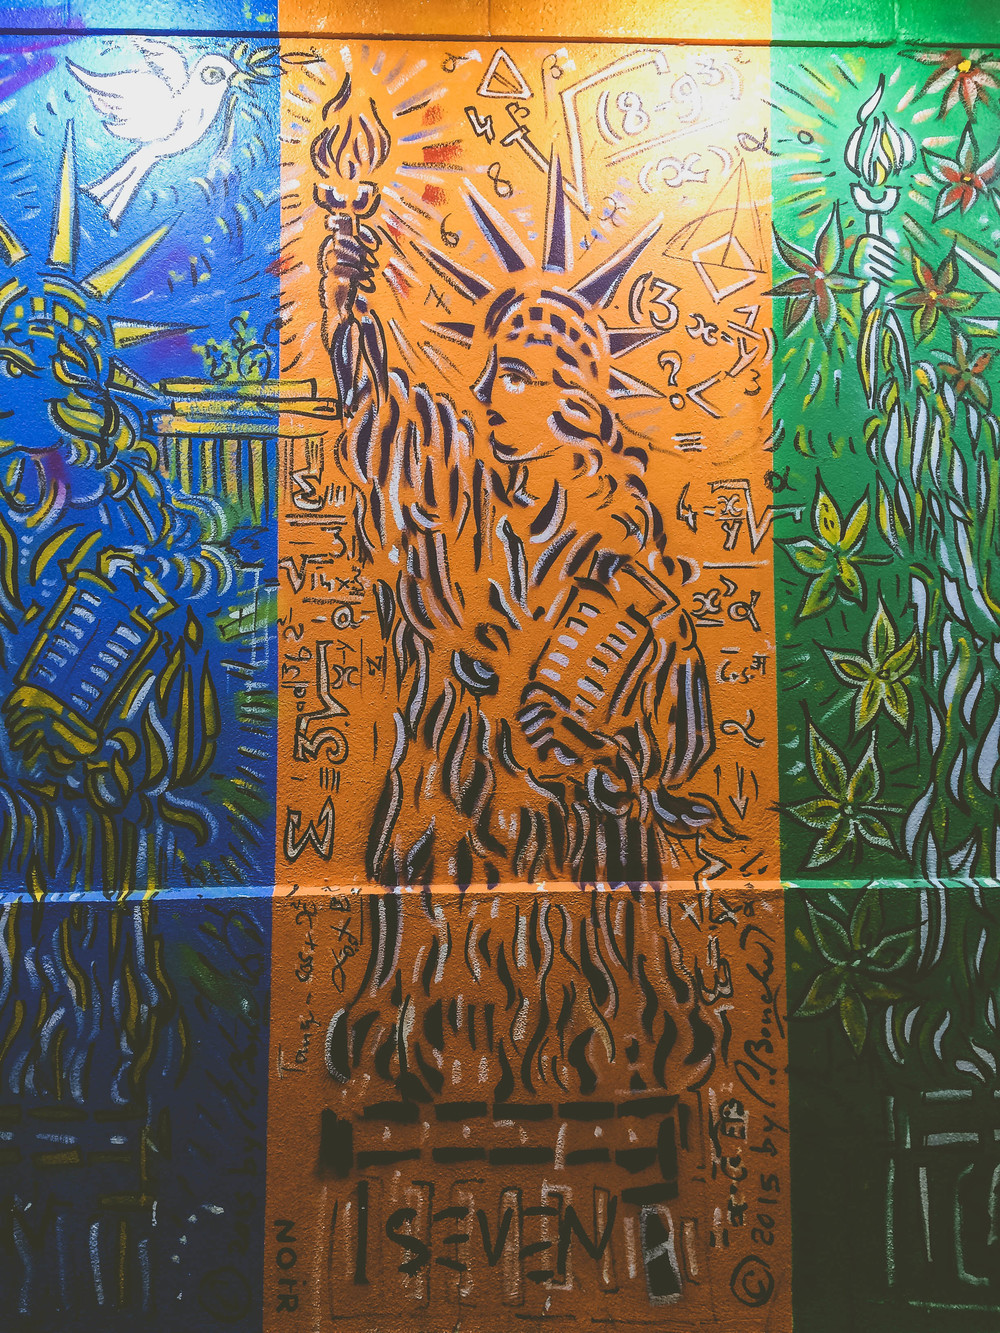 Nuit Blanche 2015: A closer look at one panel of the Statue of Liberty.